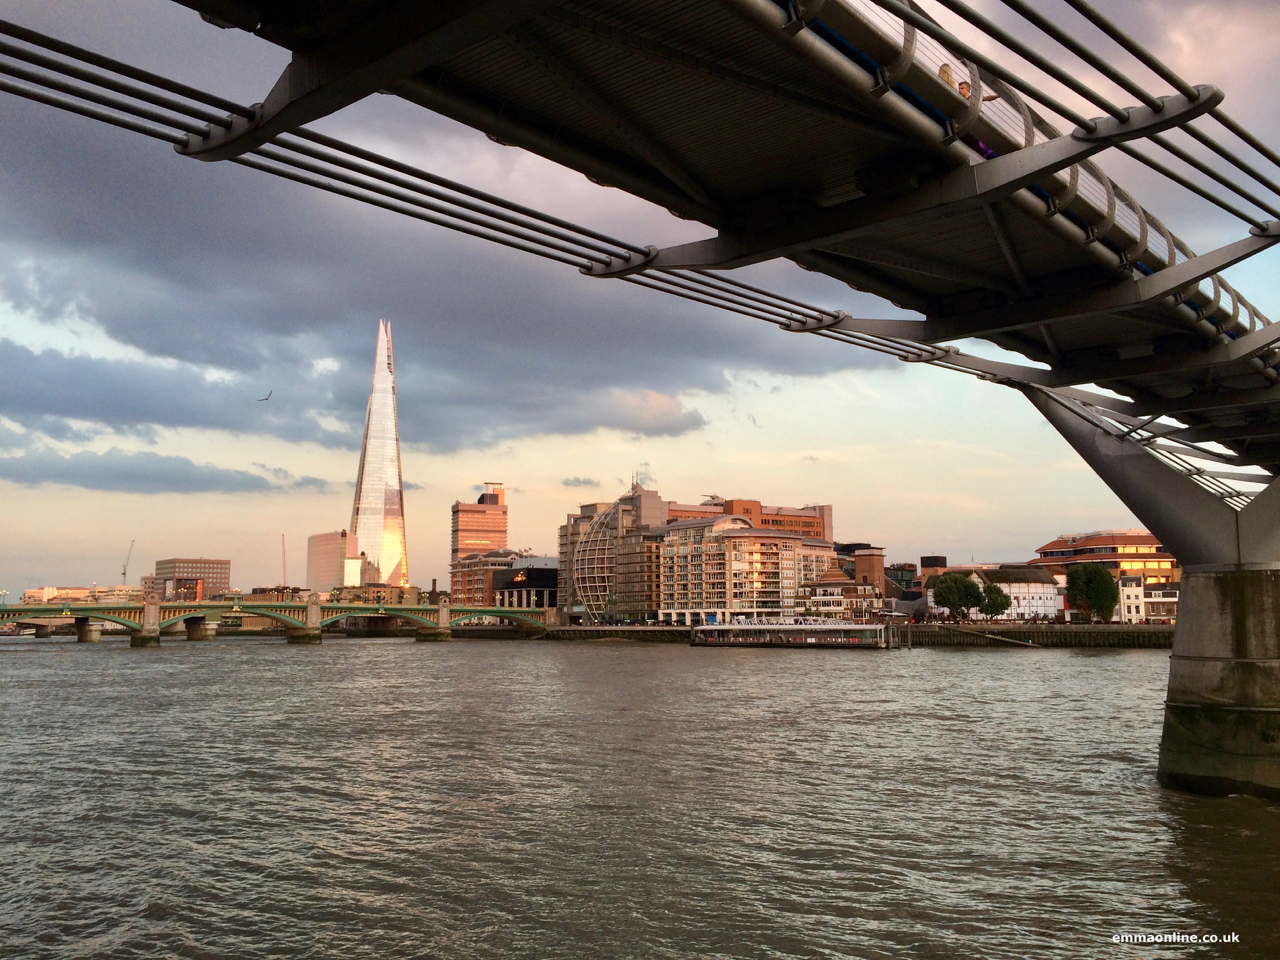 View of the Shard from the north side of the River Thames